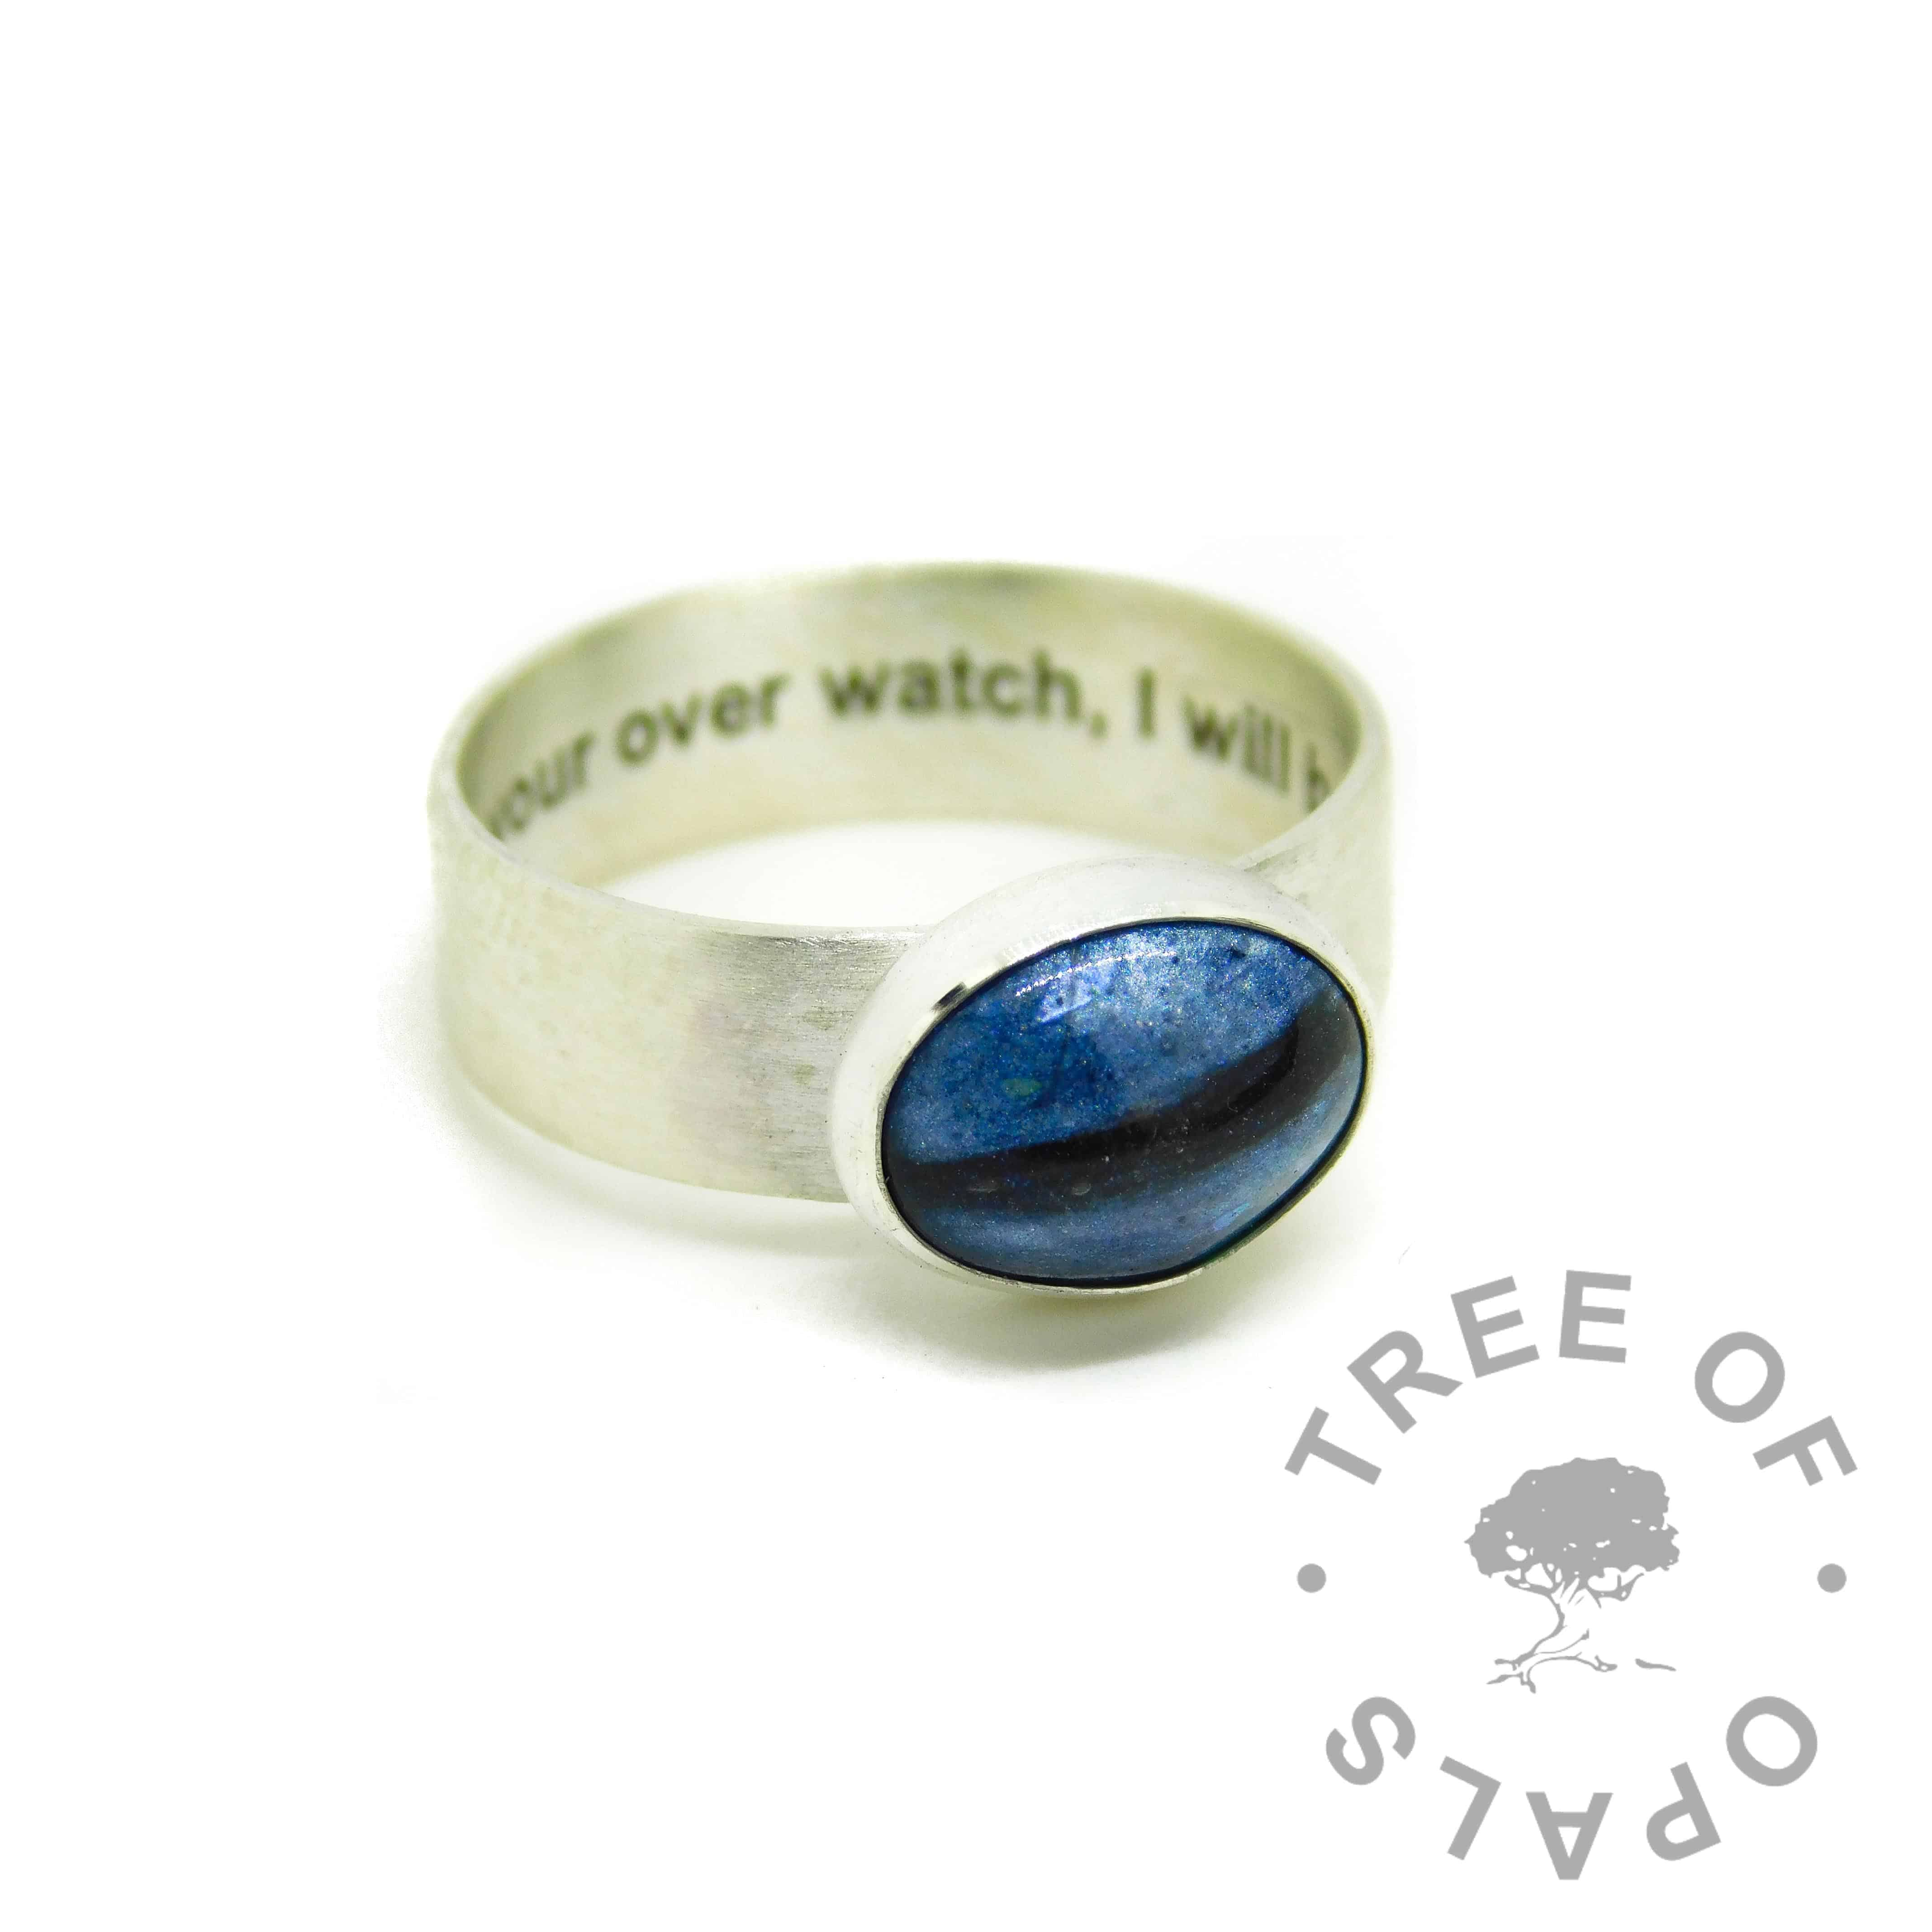 aegean blue resin sparkle mix and hair stacking ring, 6mm shiny band engraved inside with arial font